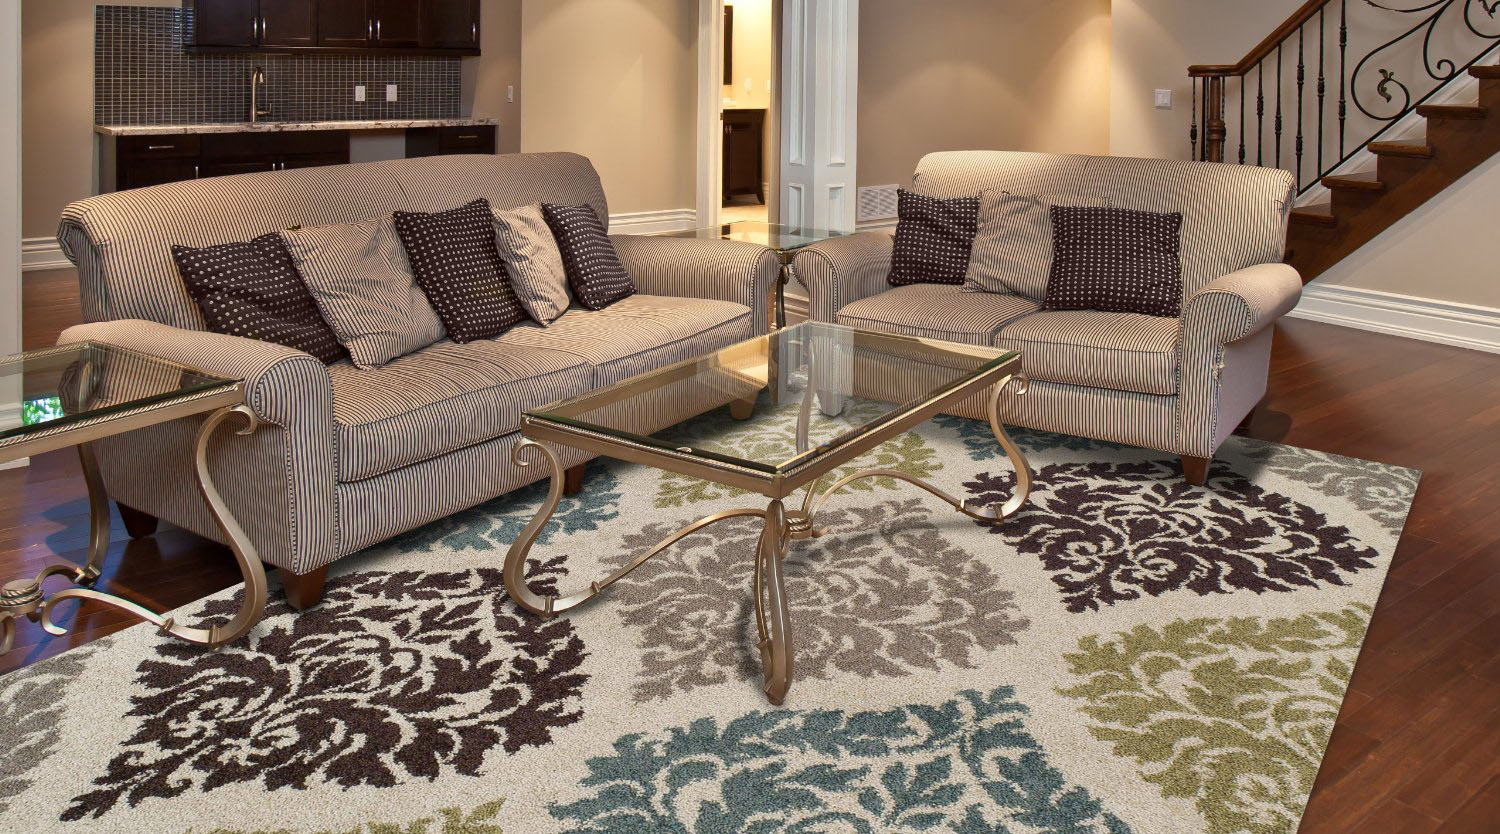 area rug in living room create cozy room ambience with area rugs idesignarch 19904